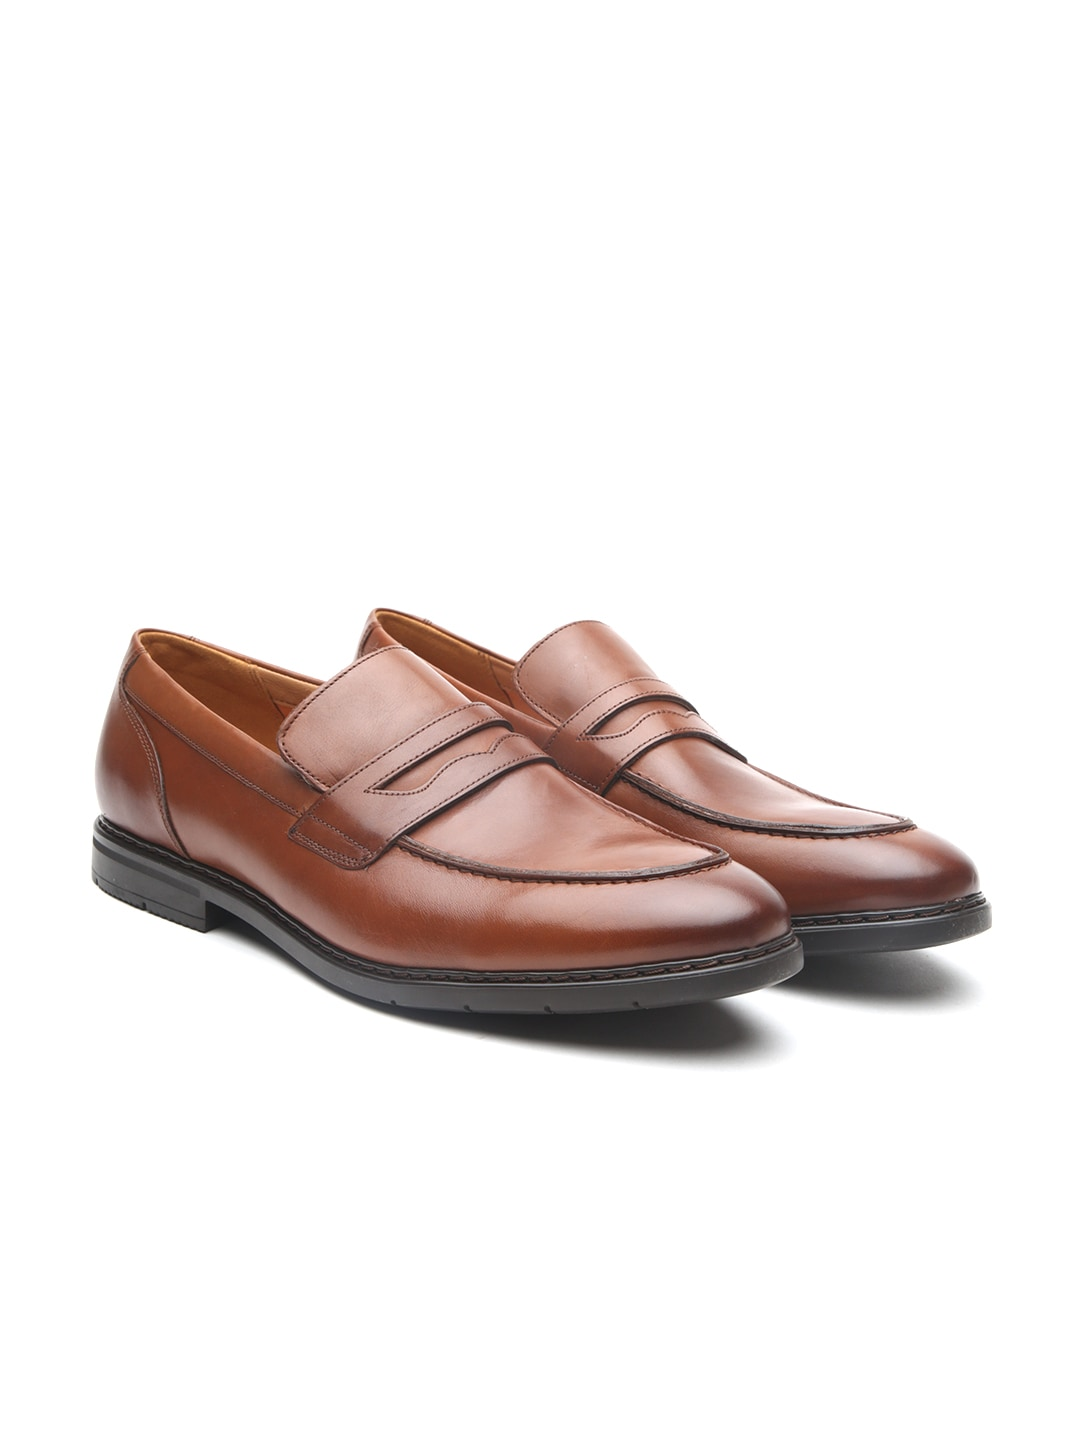 94ed86c4306 Clarks Formal Shoes